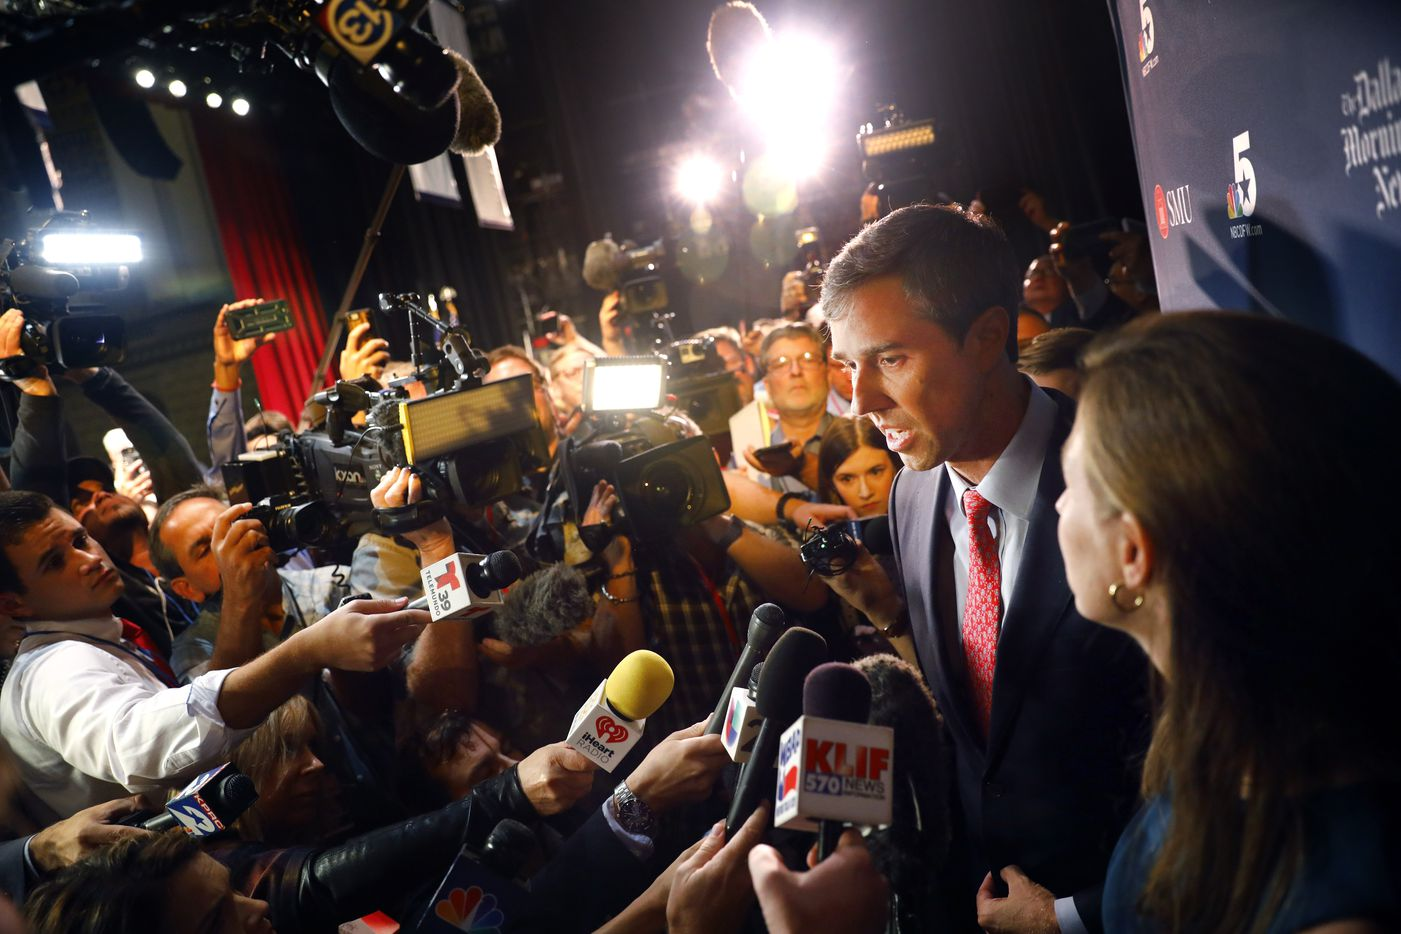 Alongside his wife Amy Hoover Sanders (right), Rep. Beto O'Rourke (D-TX) answers questions from the media following his debate with Sen. Ted Cruz (R-TX) in McFarlin Auditorium at SMU in University Park, Friday, September 21, 2018. Cruz did not participate in post debate interviews.